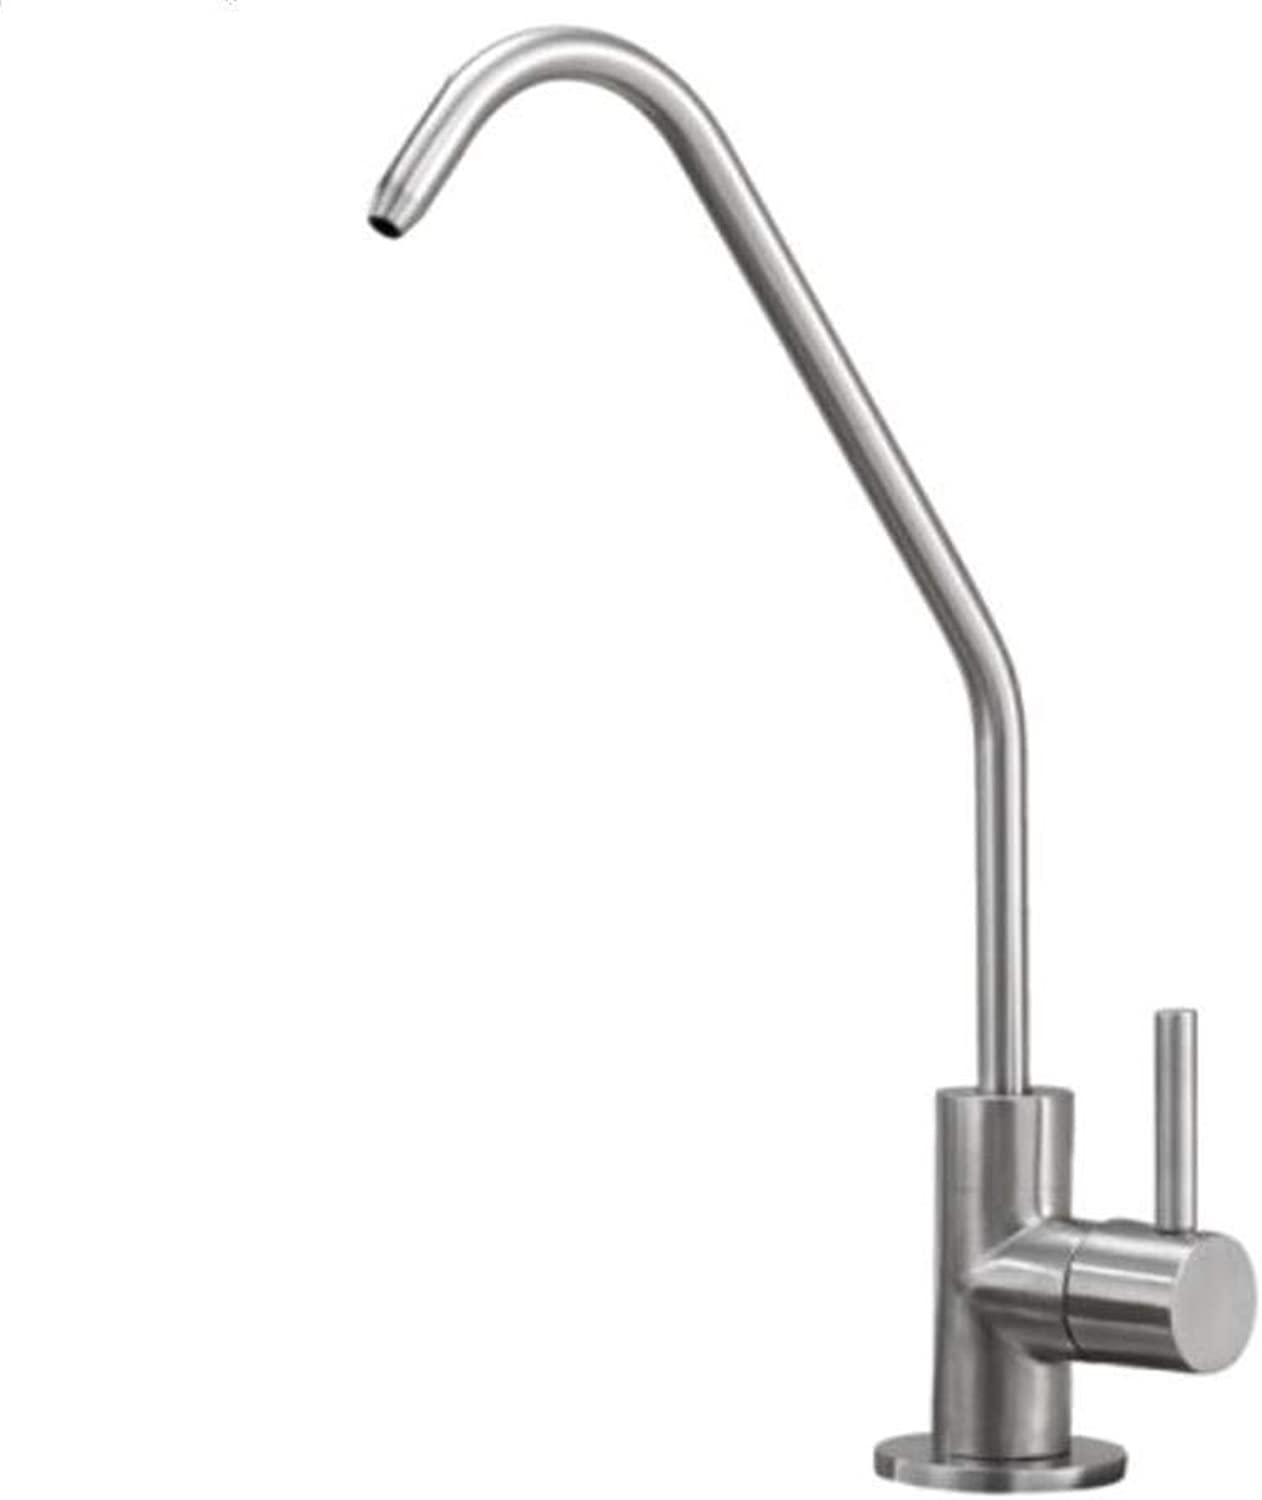 Taps Mixer?Swivel?Faucet Sink 304 Stainless Steel Pure Water Faucet Direct Drinking Water Faucet Kitchen Flume Washing Pot Single Cold Water Faucet